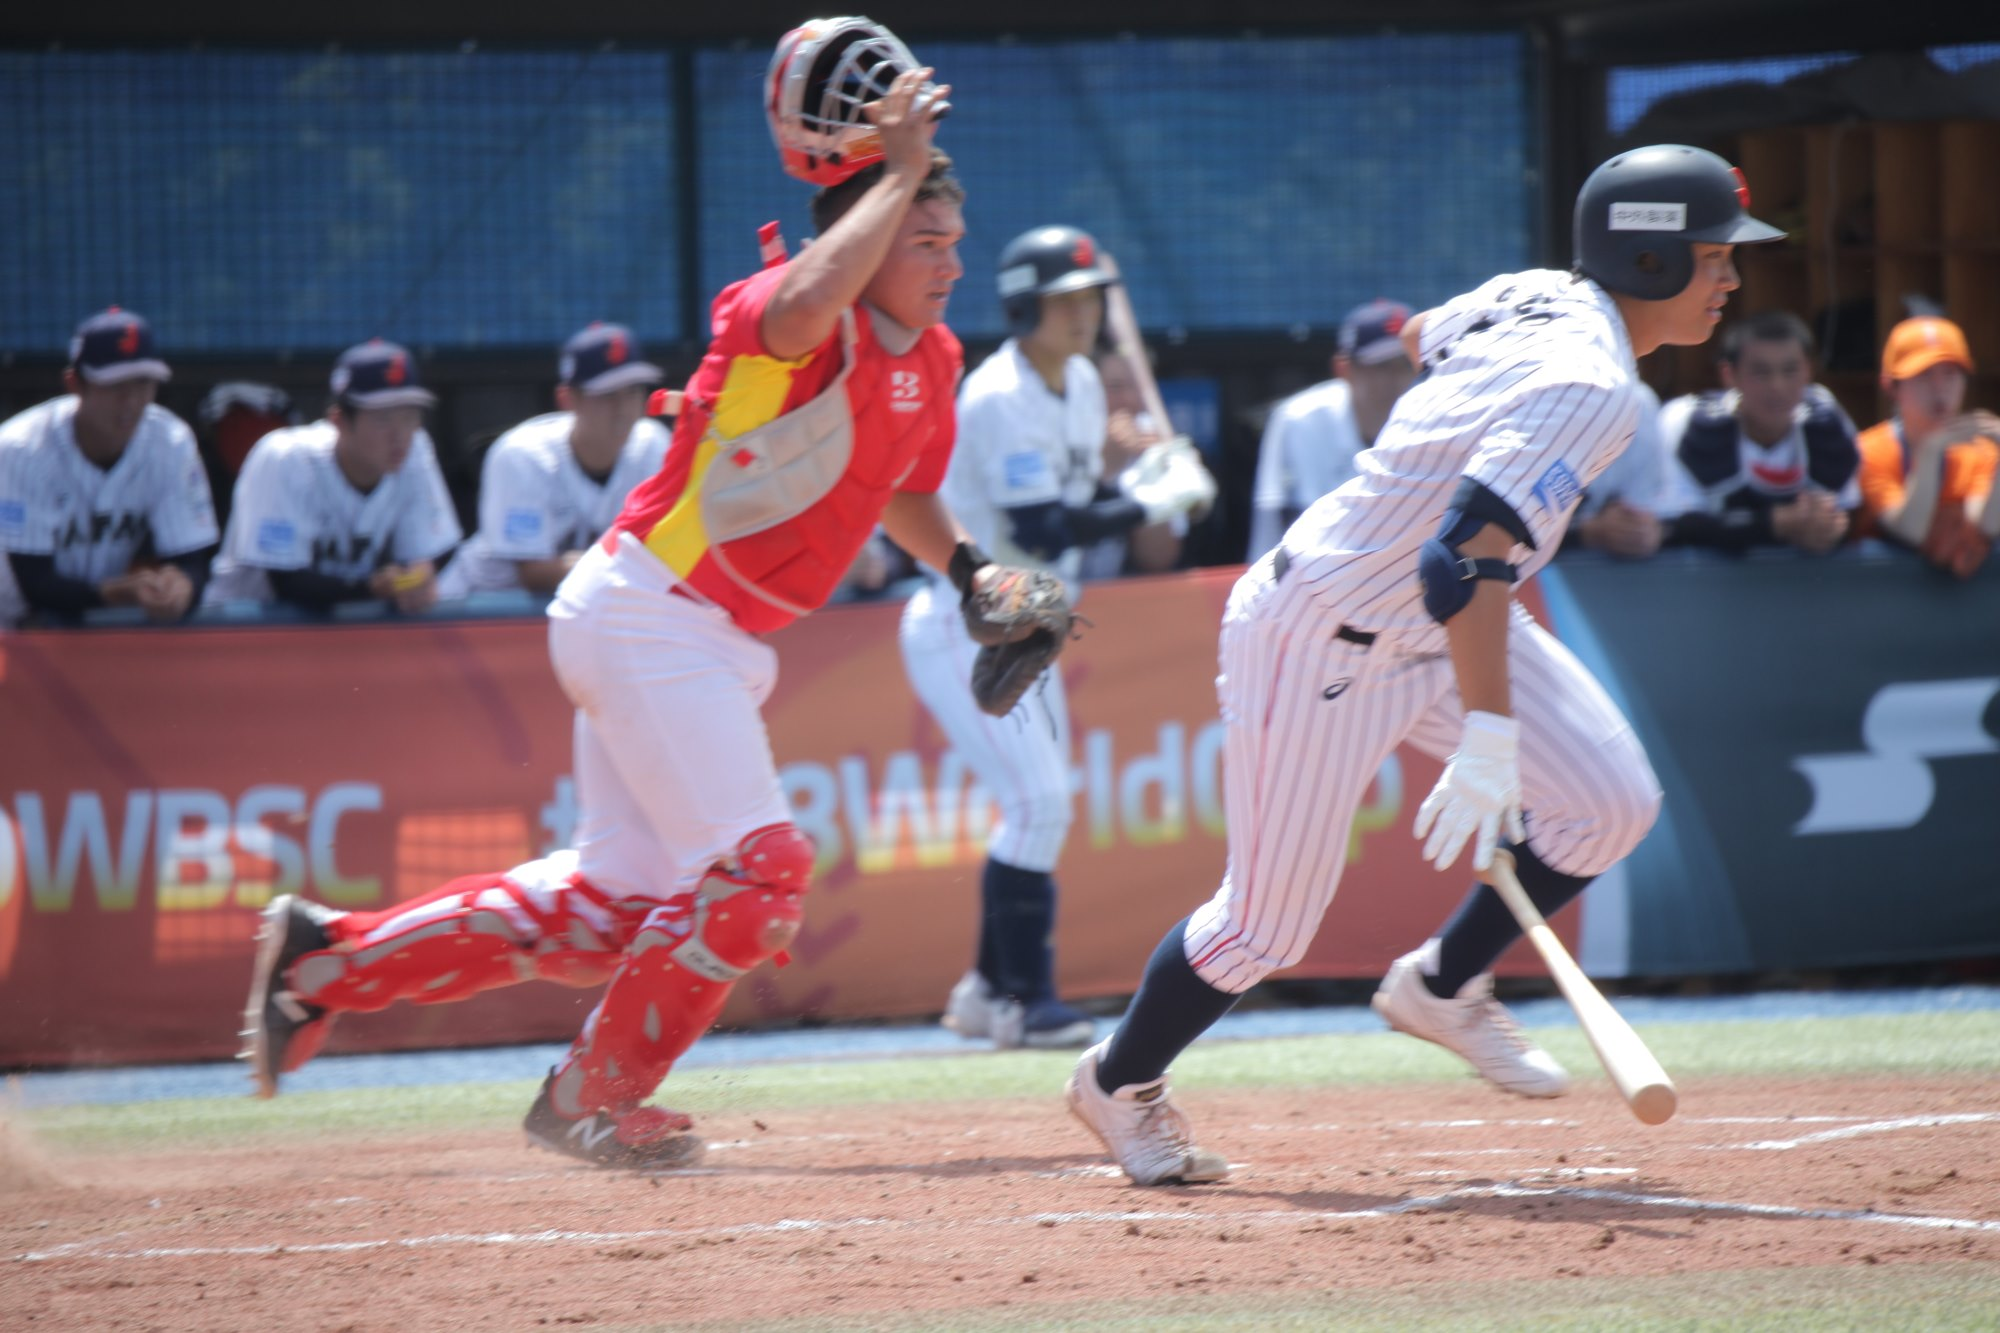 Spain catcher Juan Gonzalez committed a key error